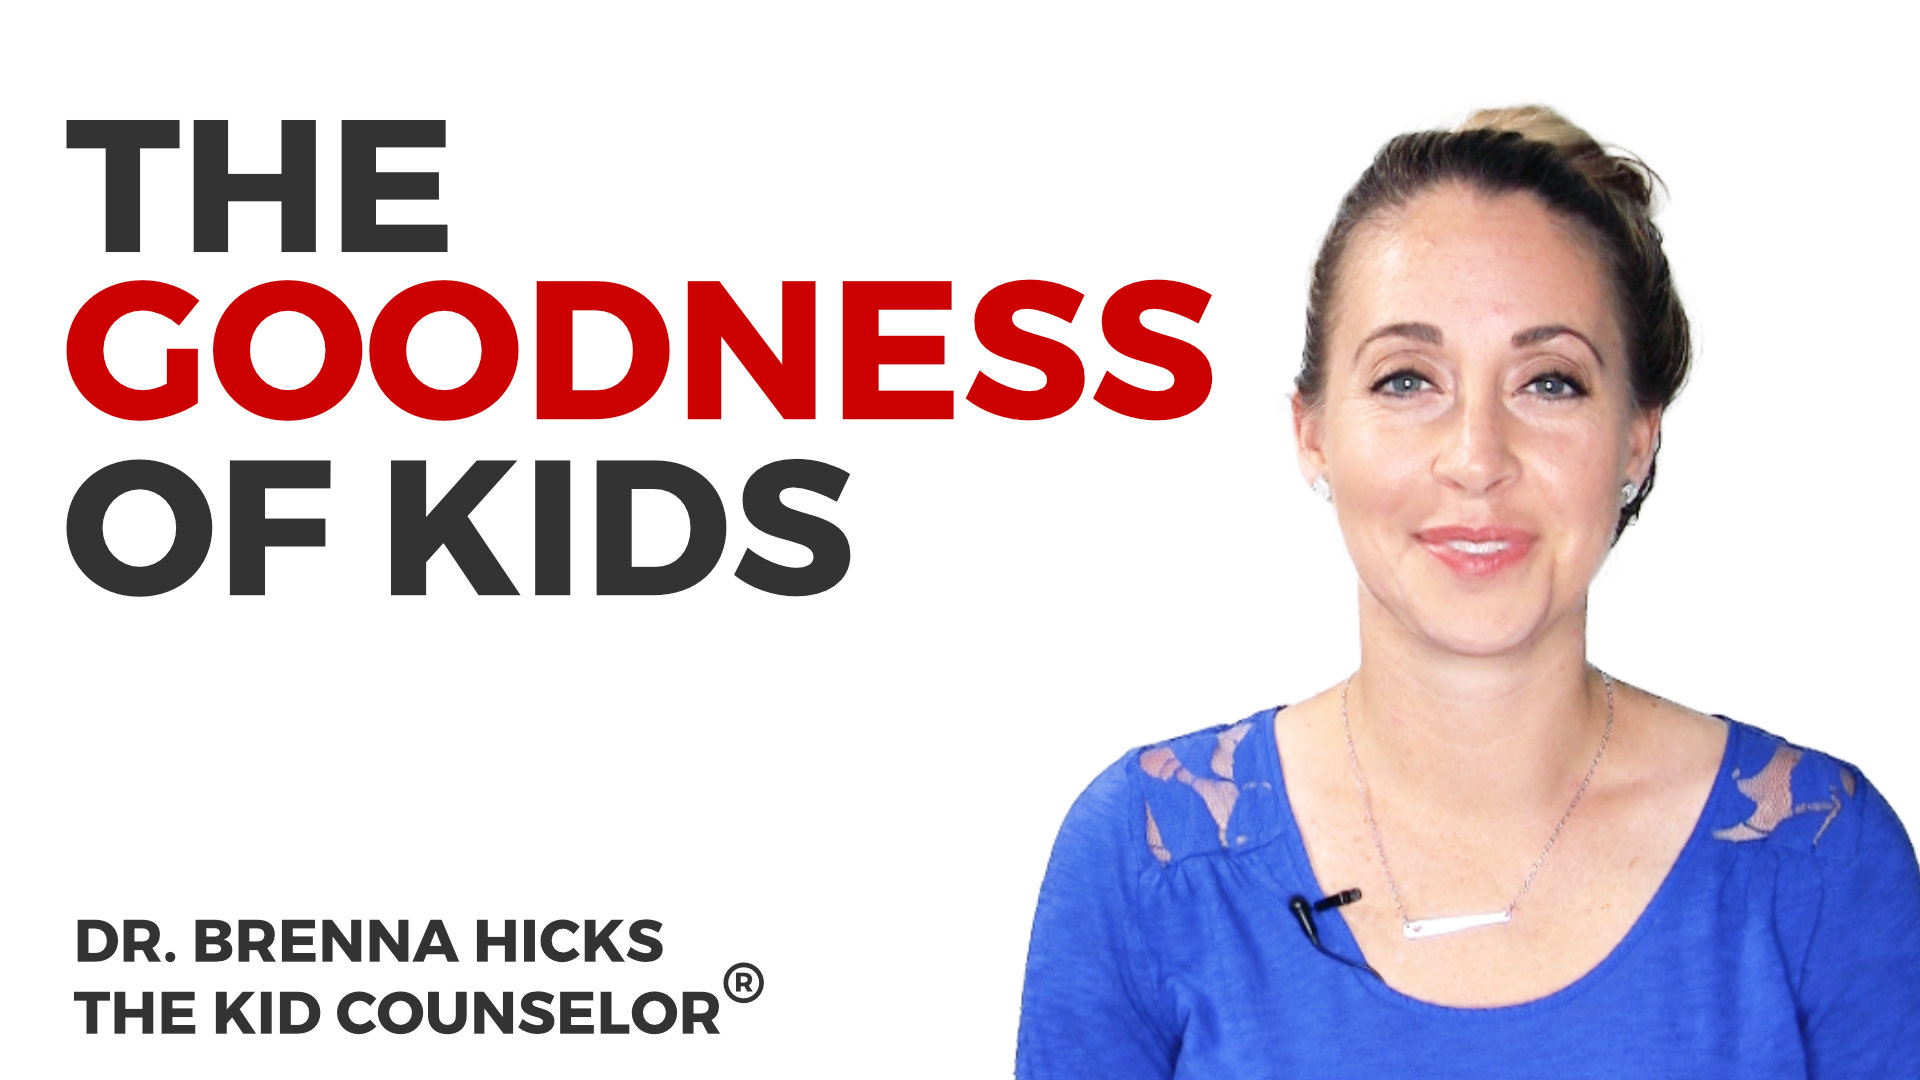 The Goodness of Kids